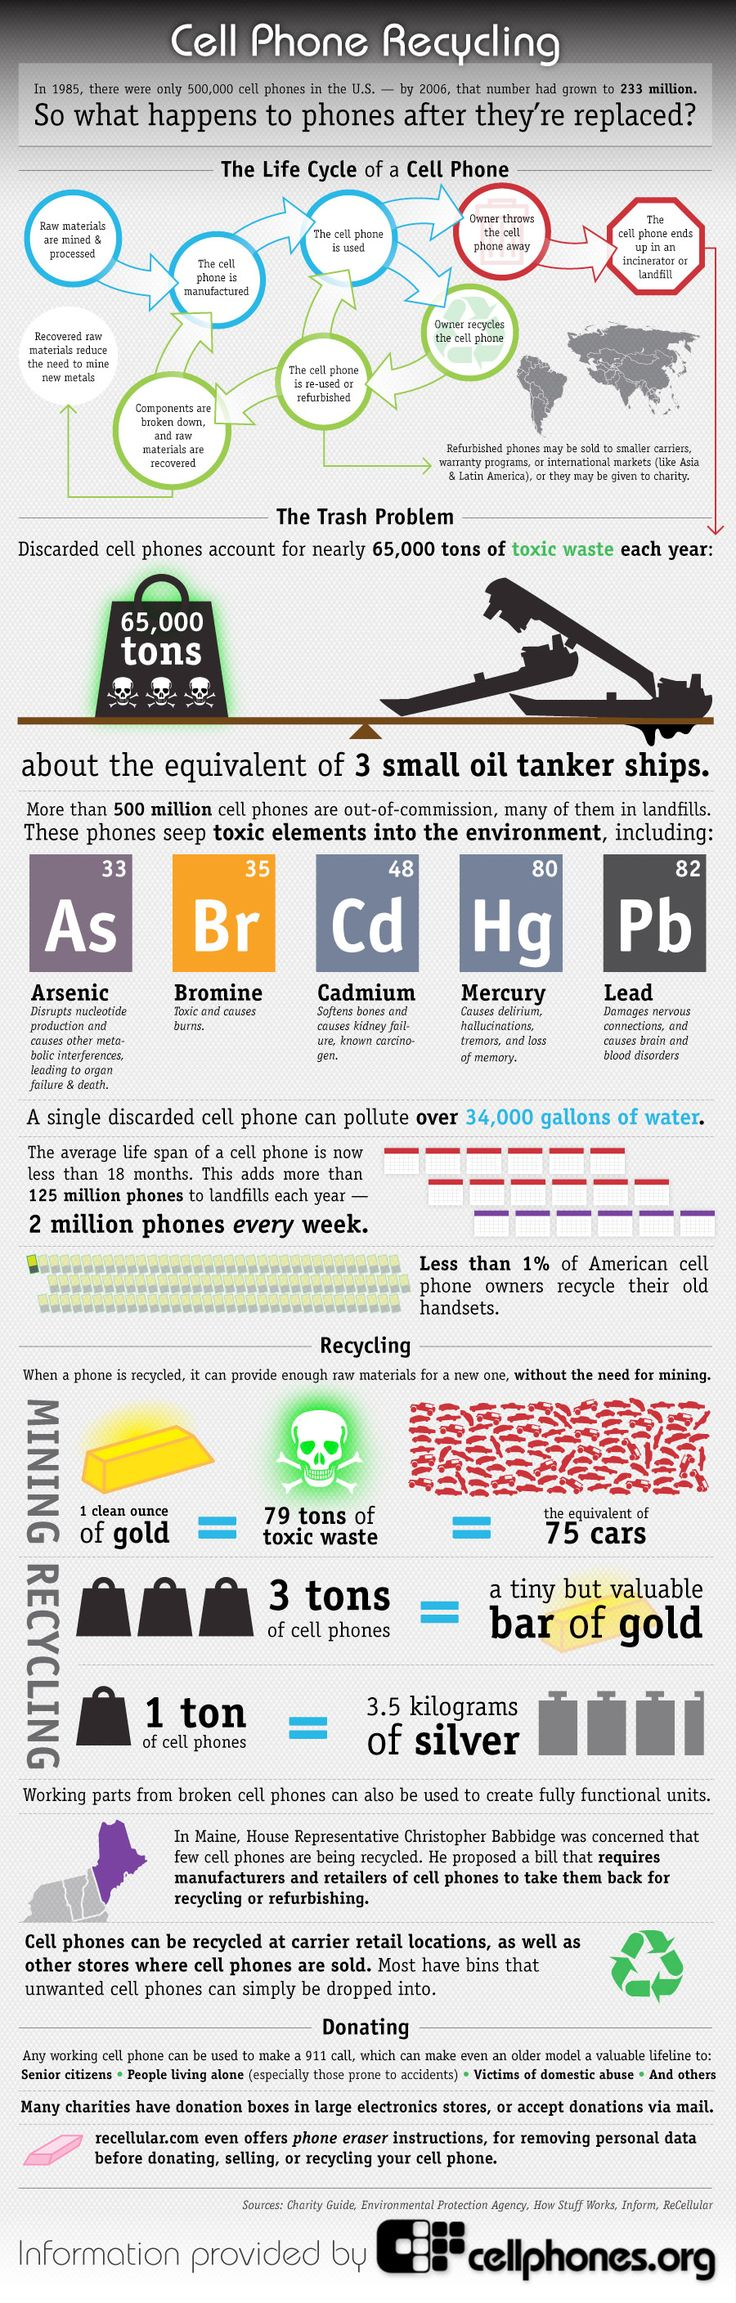 The Life Cycle of a Cell Phone - Please Recycle!